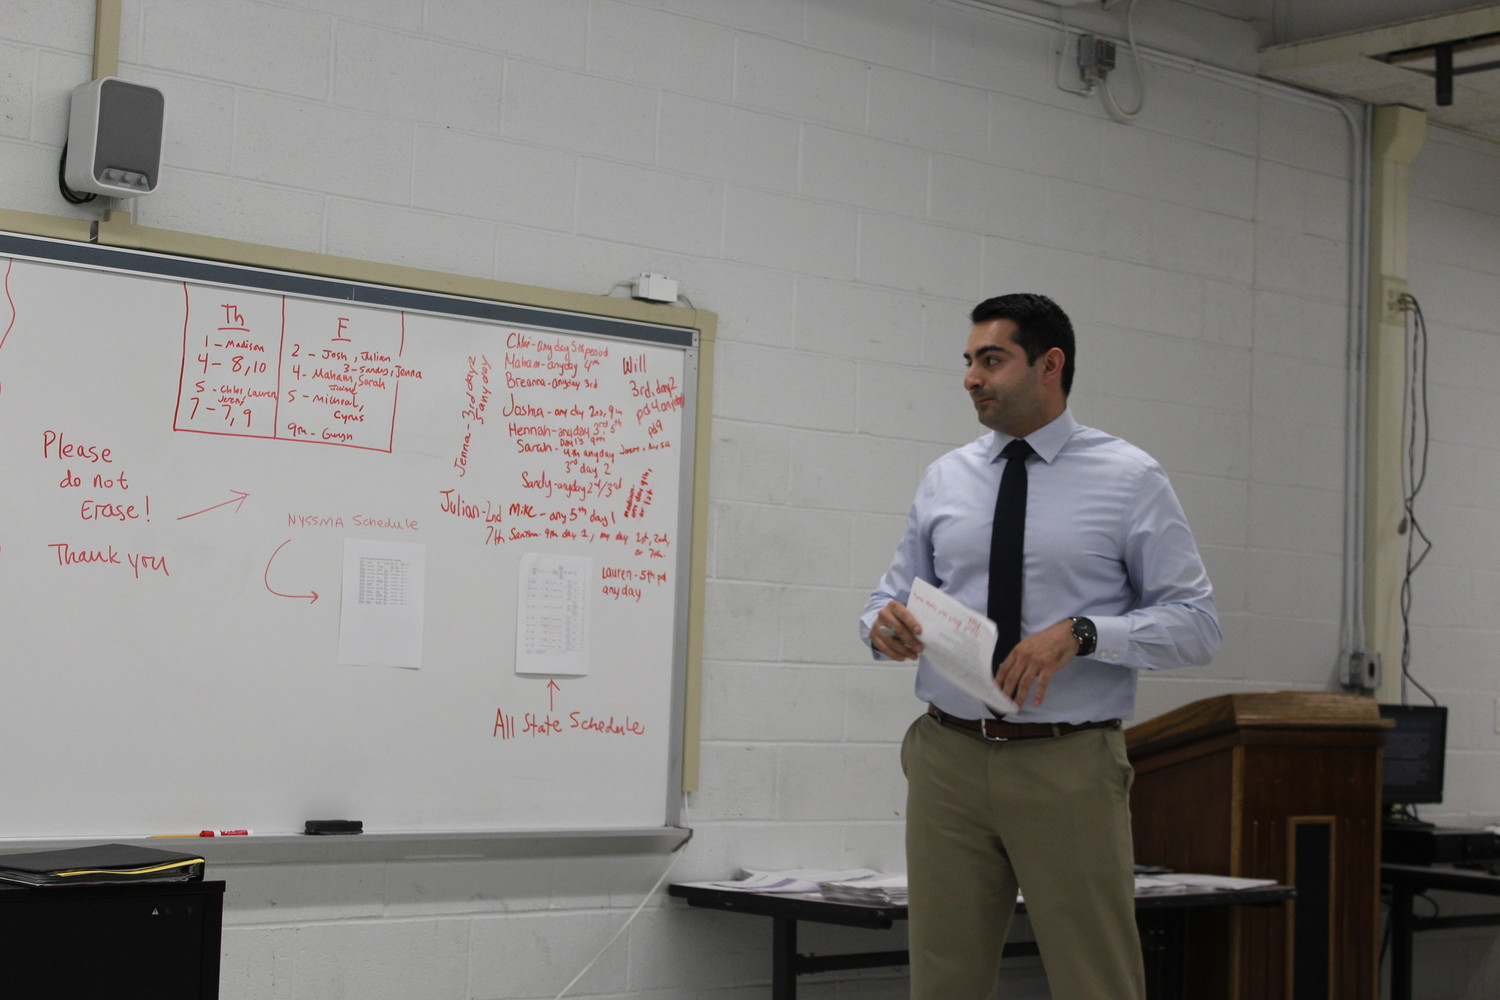 Michael Rubino, the athletic director at Valley Stream Central High School, spoke to about 20 parents on April 25 about creating an athletics booster club.